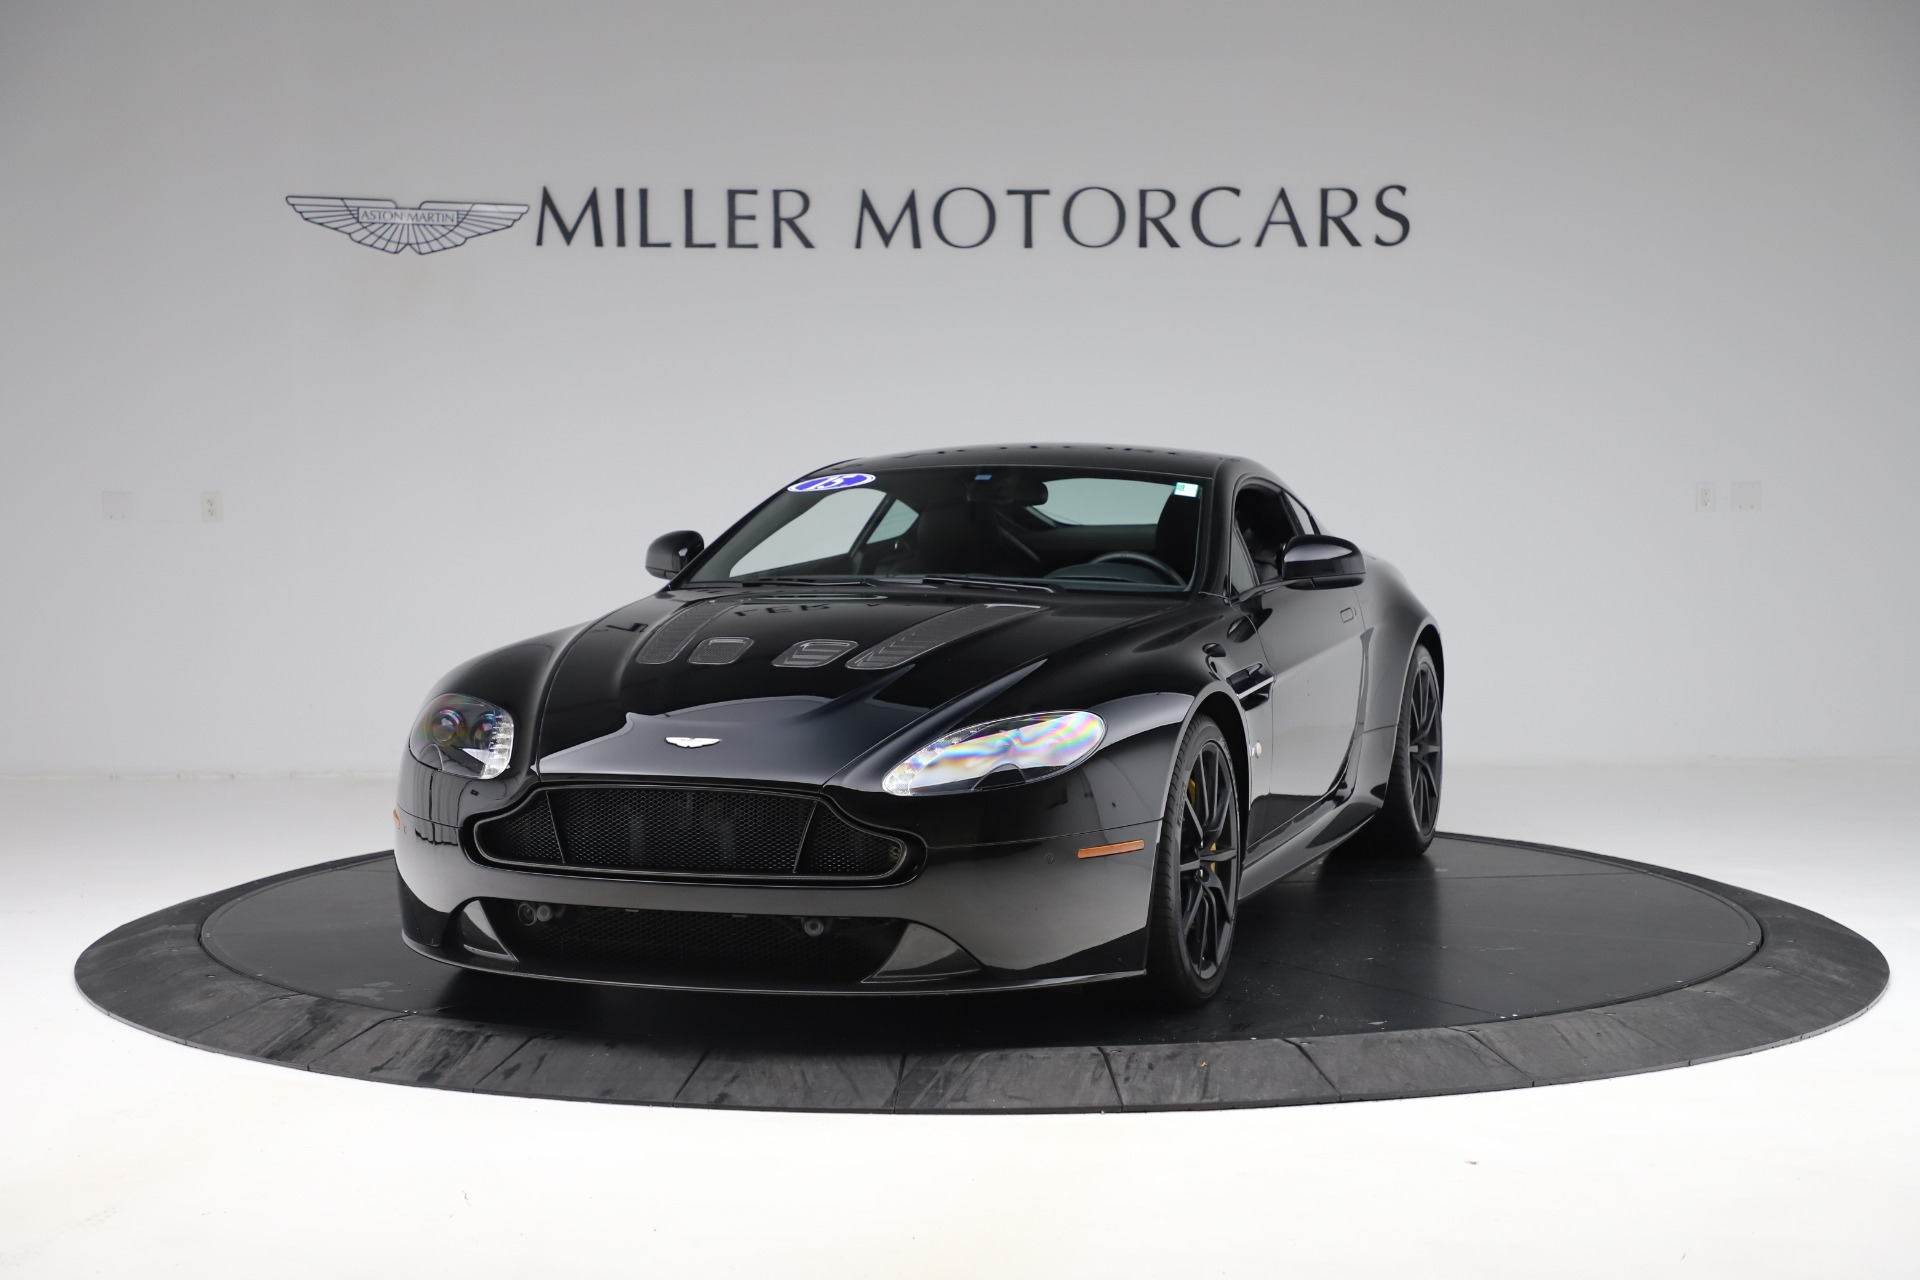 Used 2015 Aston Martin V12 Vantage S Coupe For Sale In Westport, CT 3513_p2